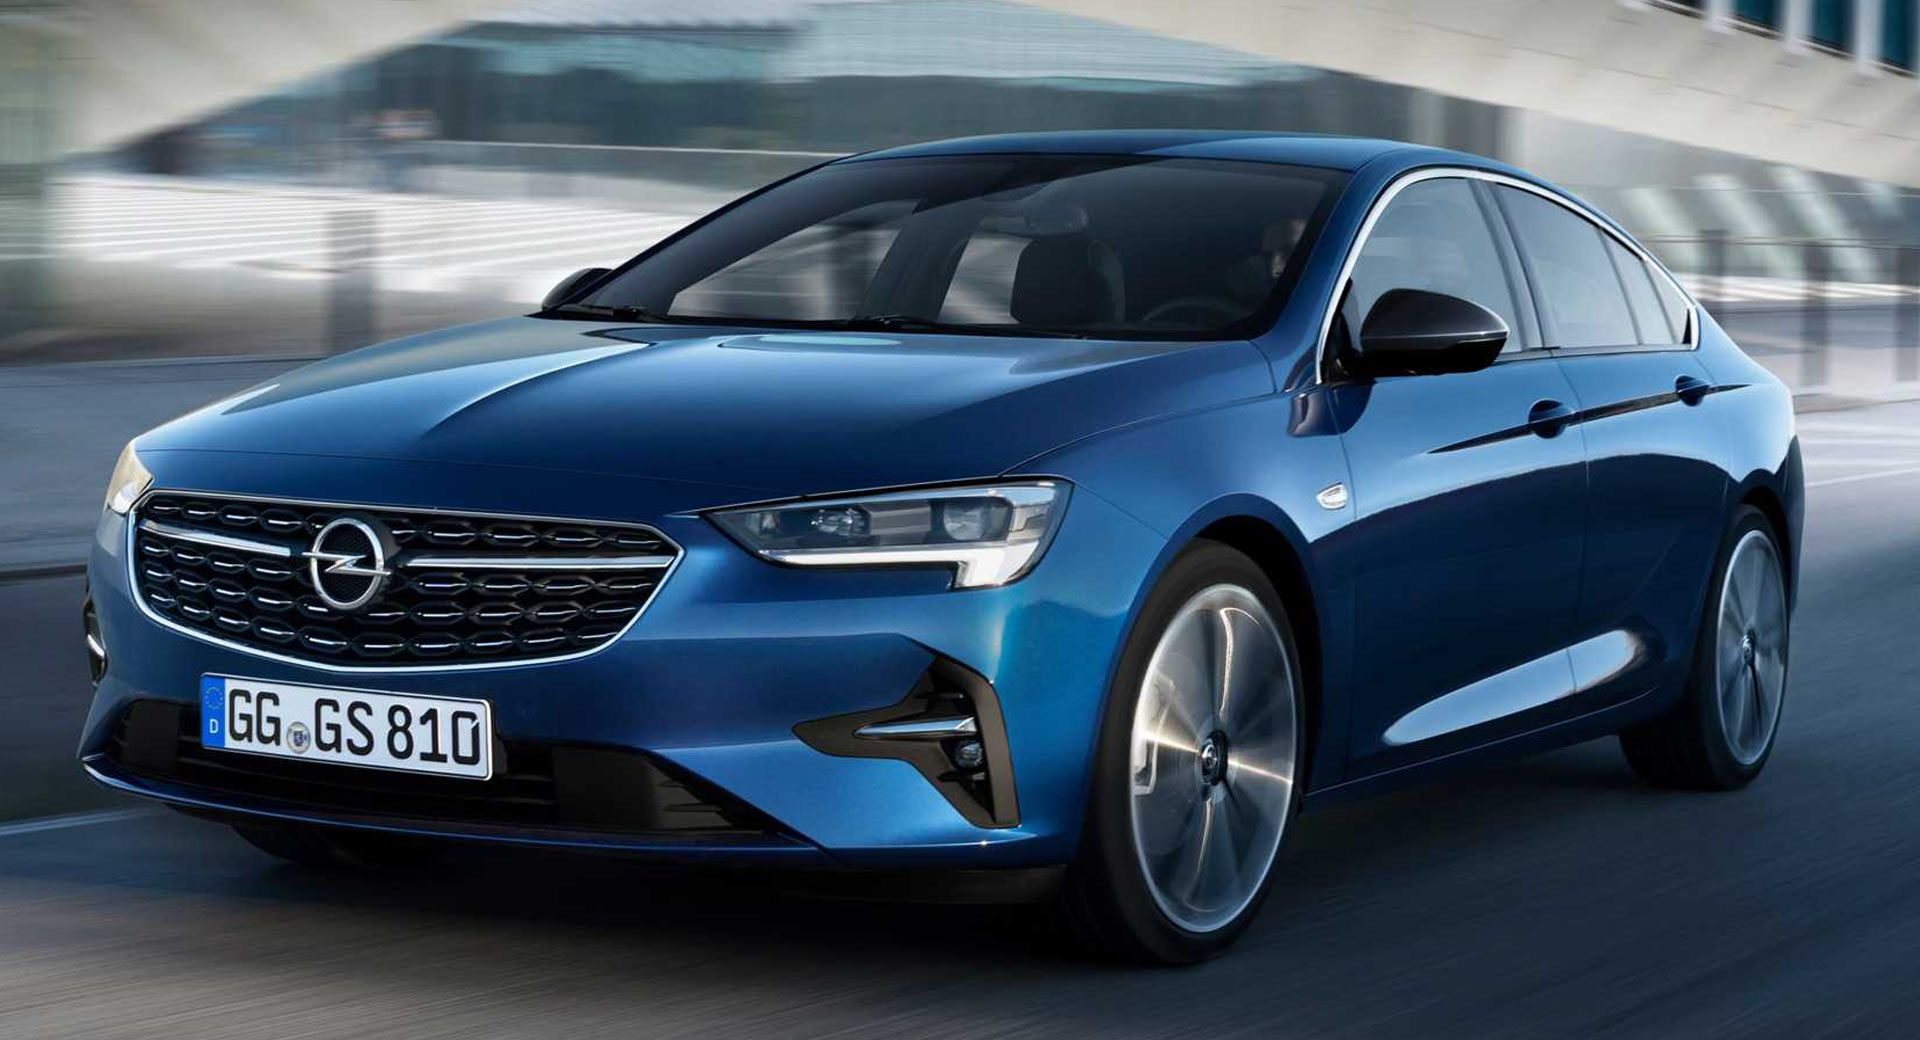 2020 Opel And Vauxhall Insignia Facelift Revealed With Sleeker Styling And Updated Tech Newcars Opel Opelinsignia Vauxhall Vauxhall Insignia Vauxhall Opel